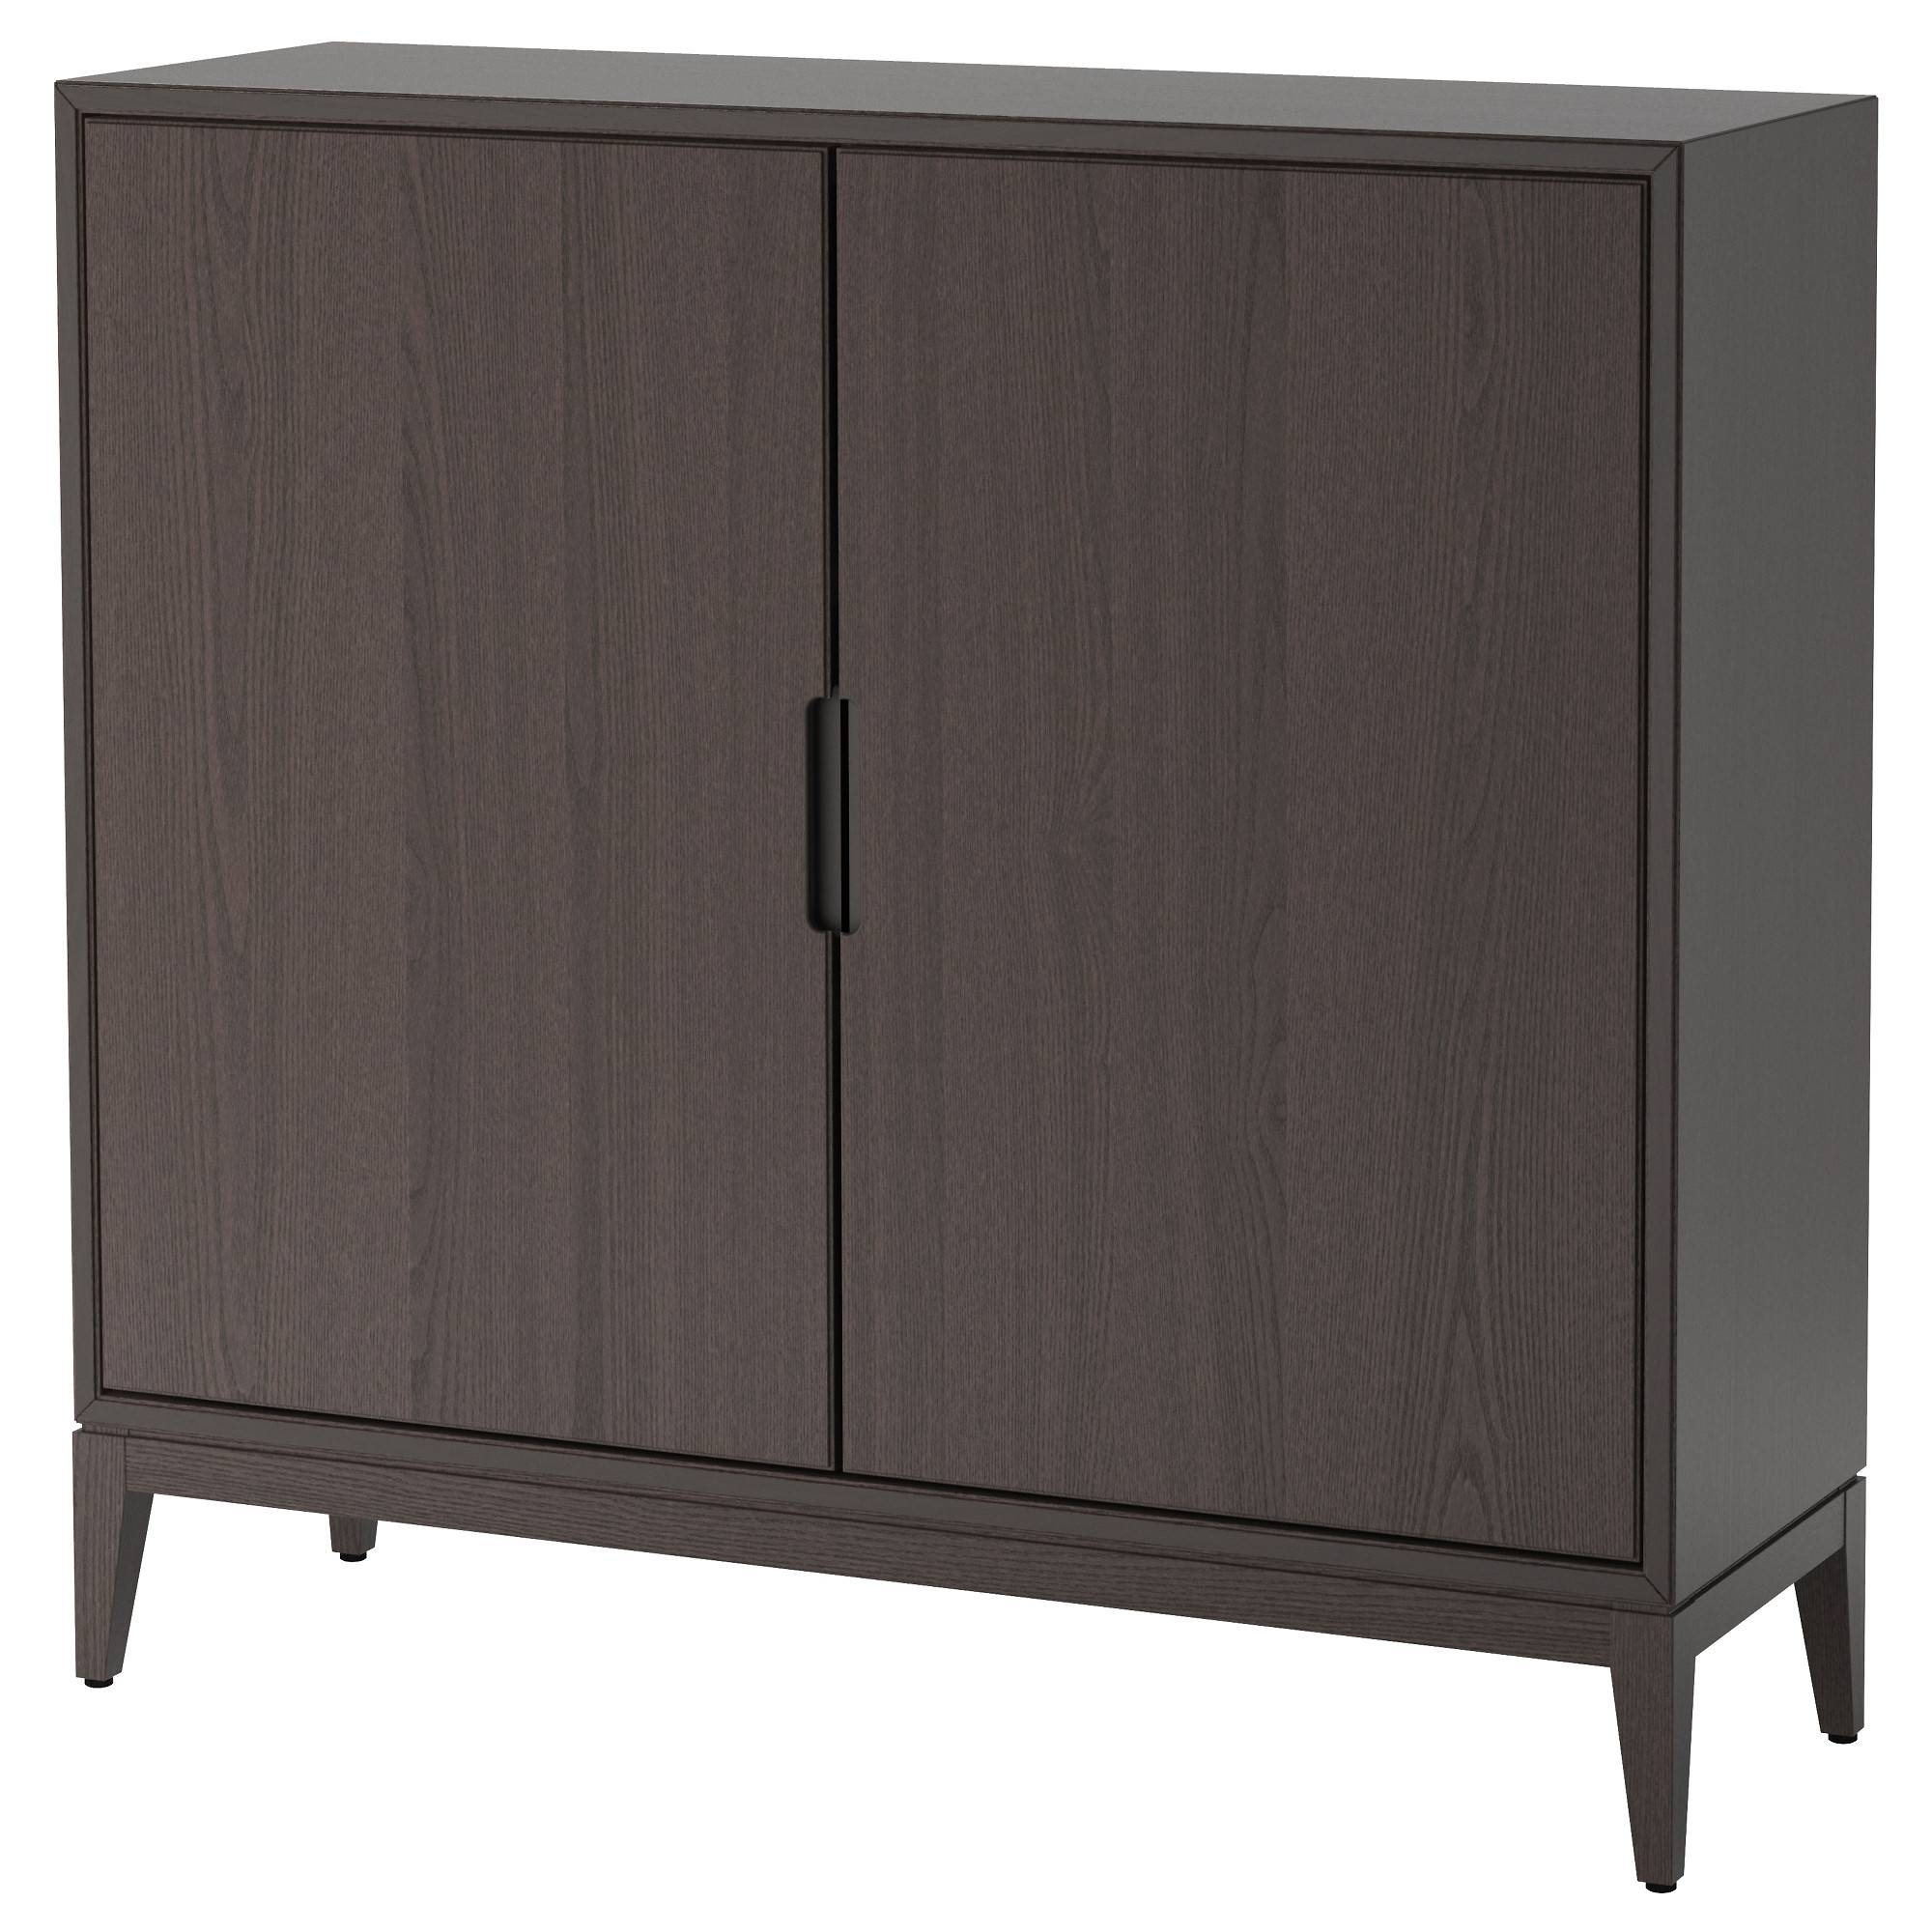 Cabinets & Sideboards – Ikea Within Slim Sideboards (View 10 of 30)